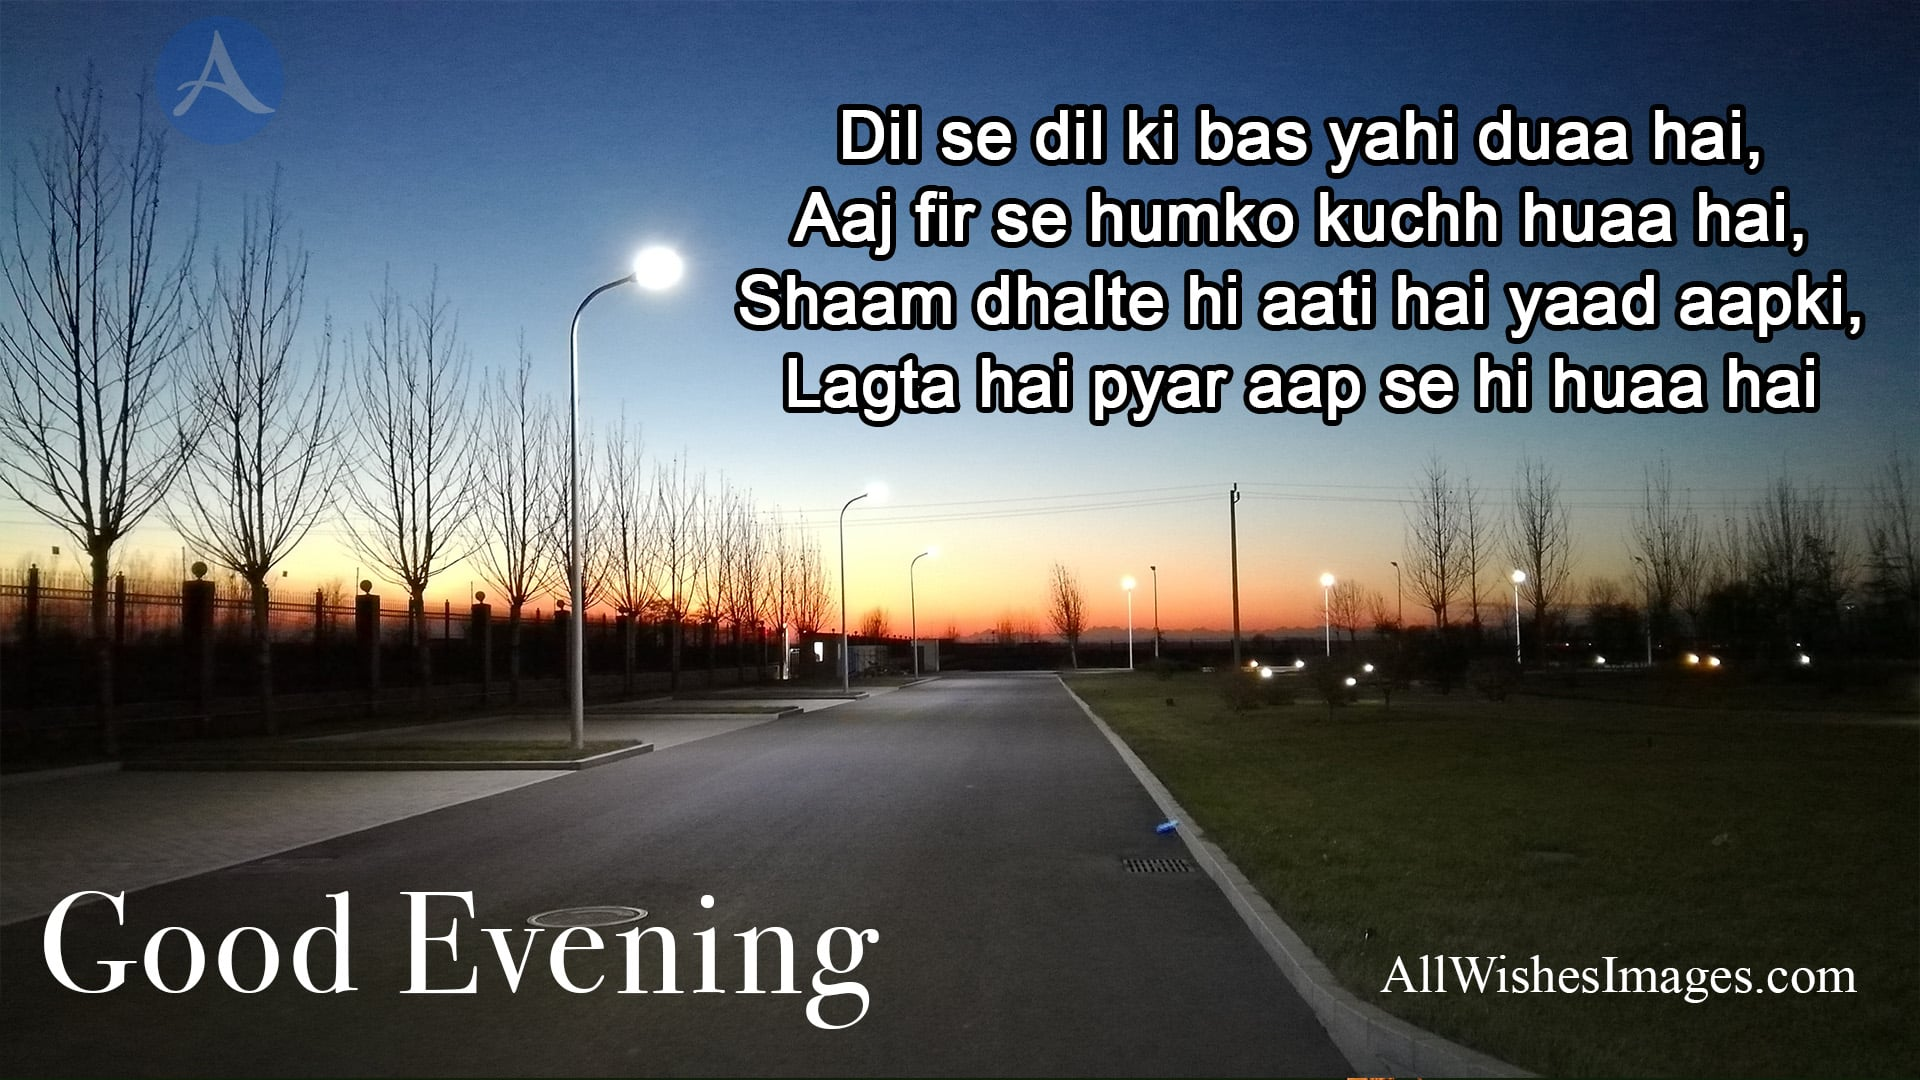 Good Evening Shayari In Hindi With Image Good Evening Images For Whatsapp